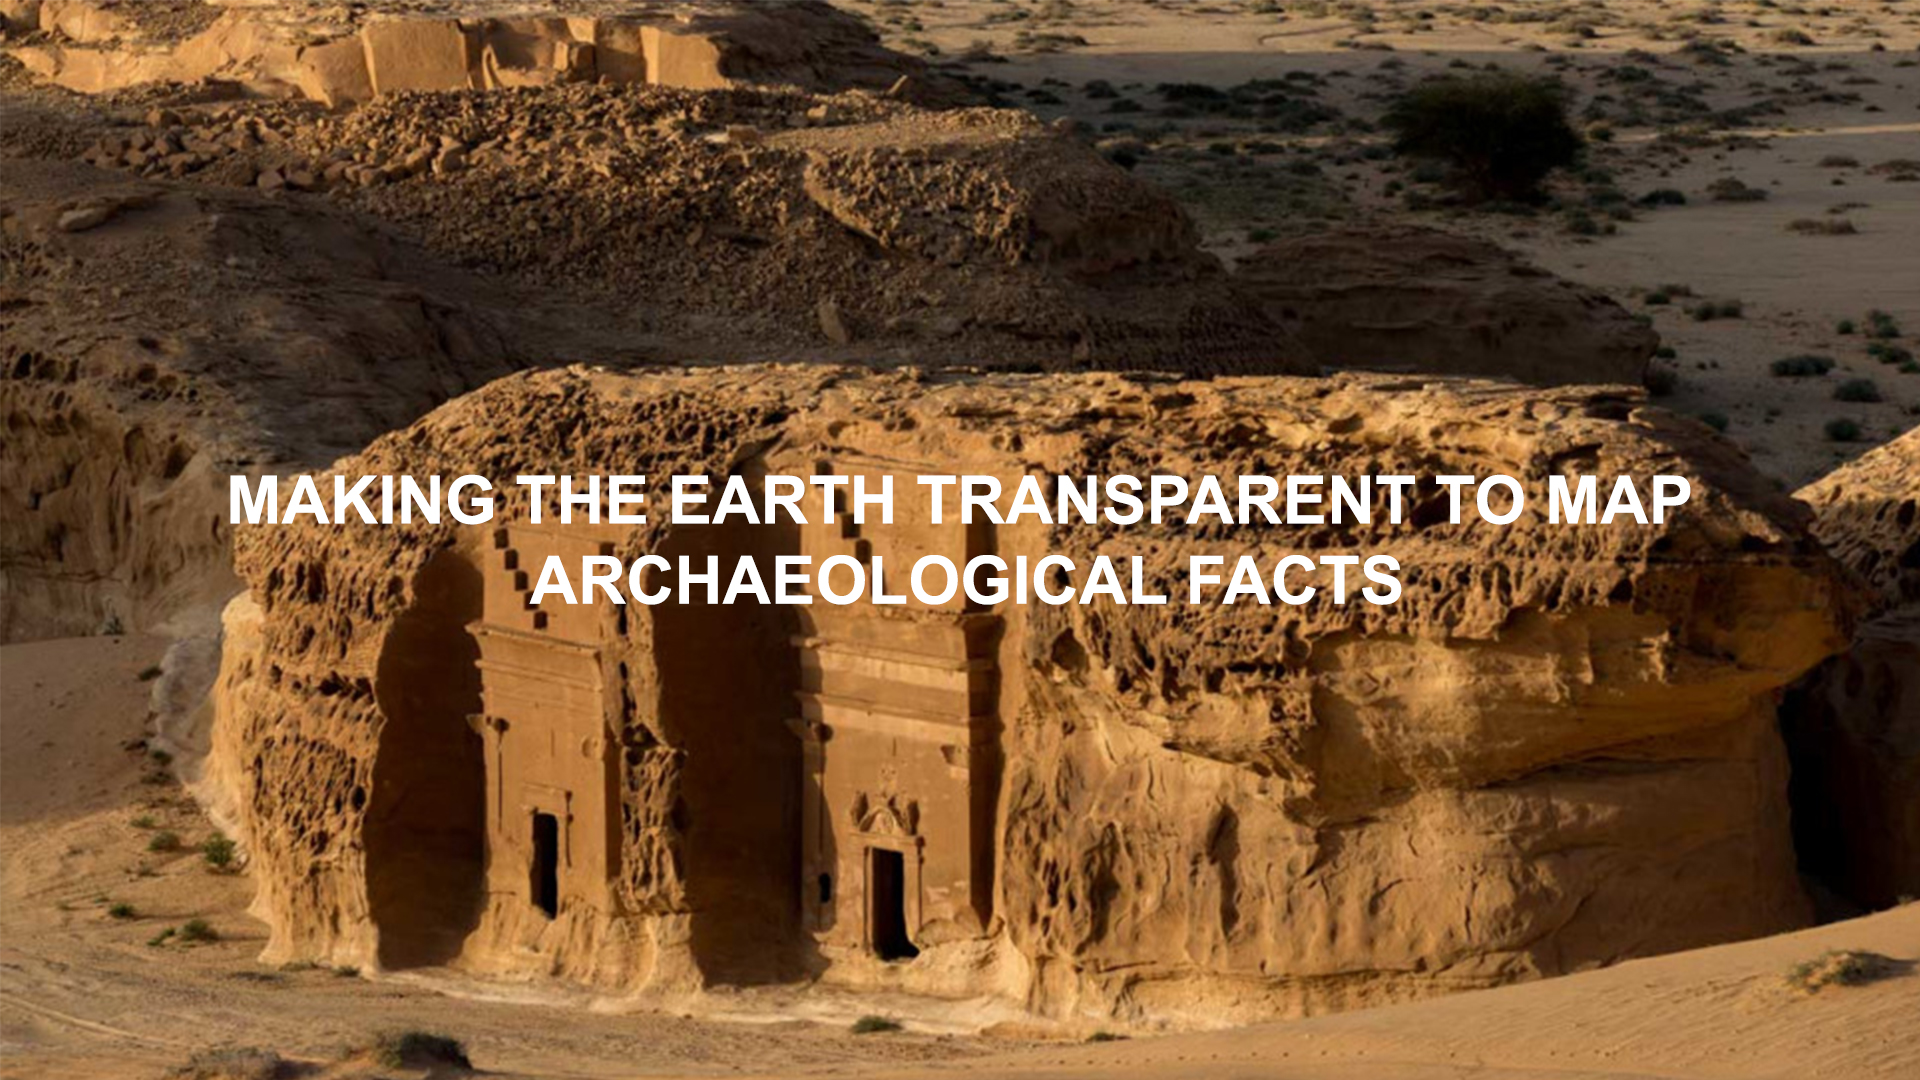 MAKING THE EARTH TRANSPARENT TO MAP ARCHAEOLOGICAL FACTS, Tellus Environment